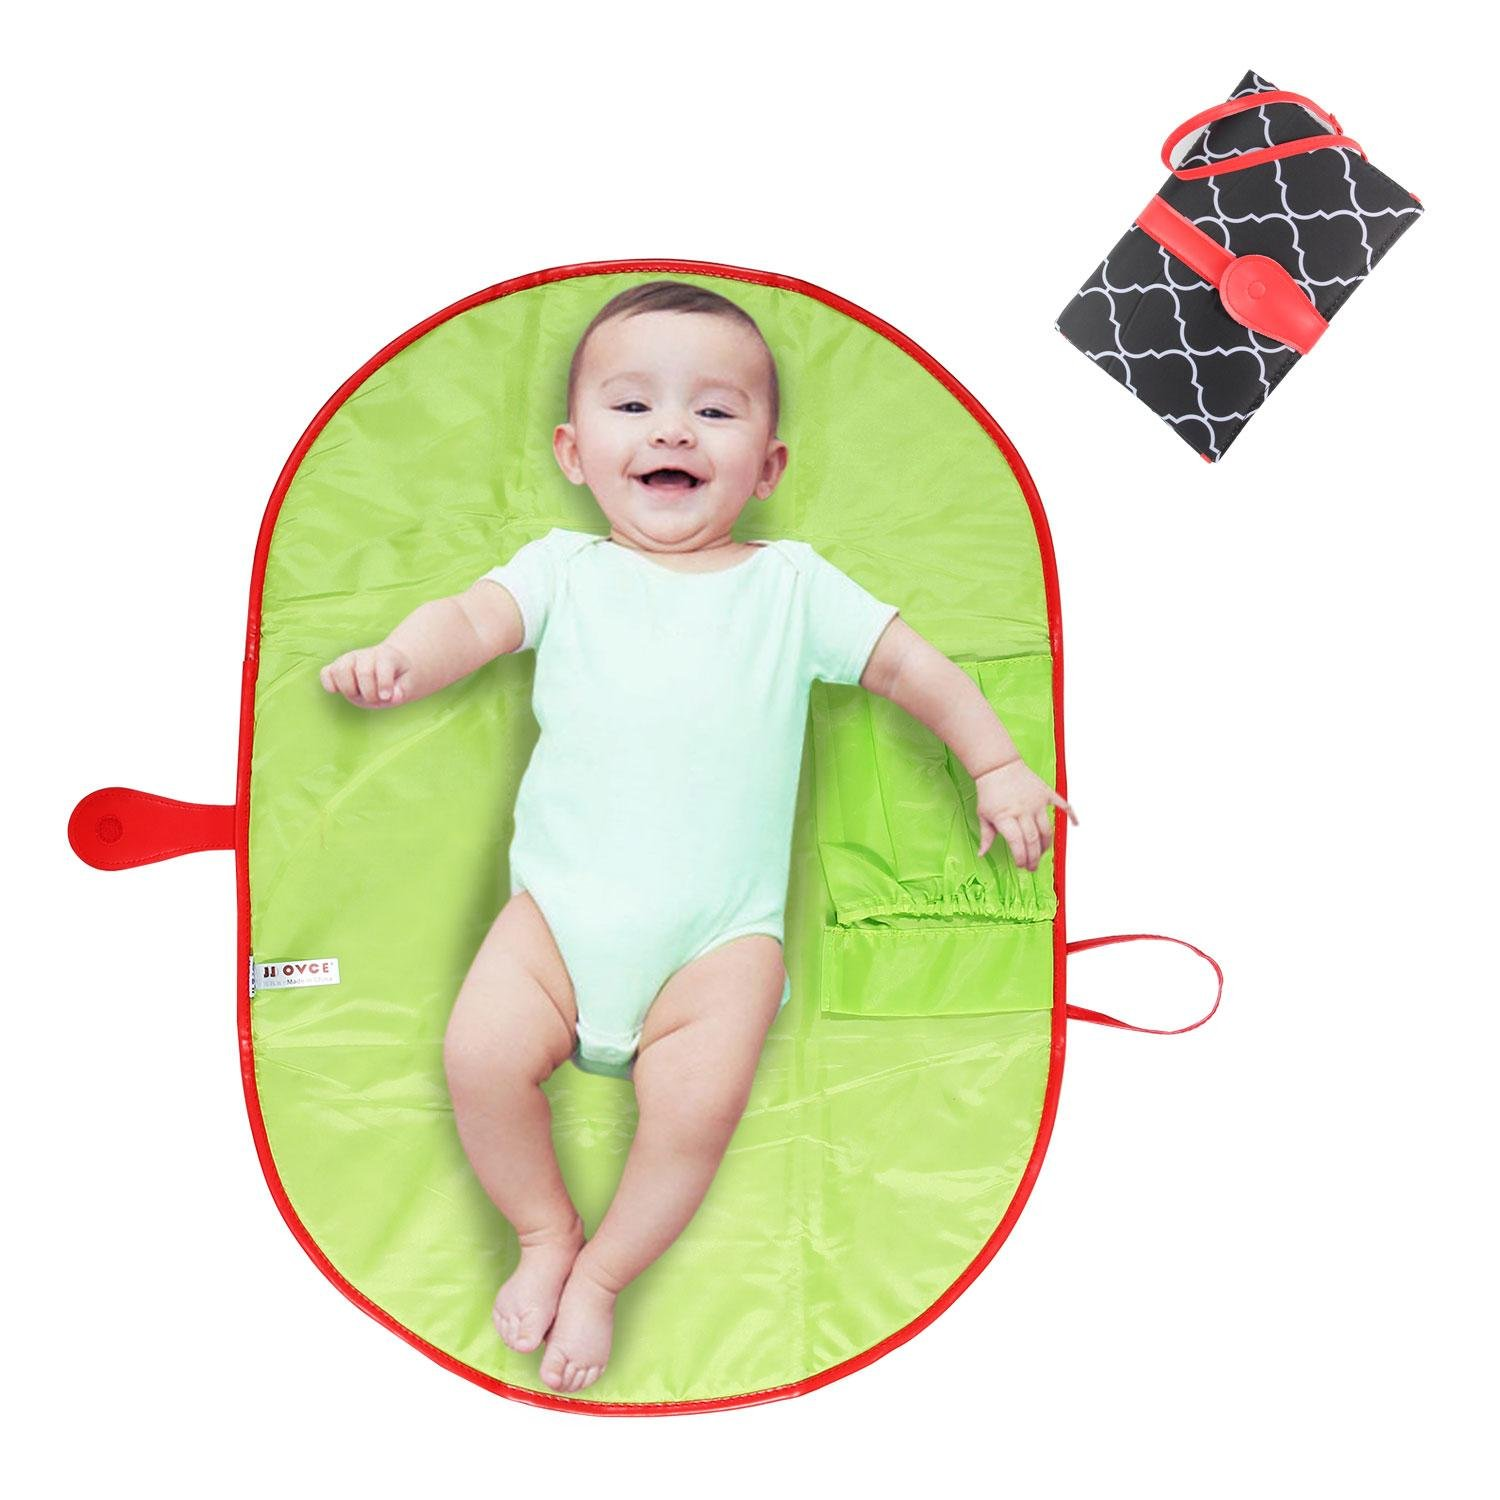 Pawaca Portable Nappy Changing Mat, Waterproof Diaper Changing Pad with Pocket, Portable Diaper Changing Station for Travel, Home, Outside